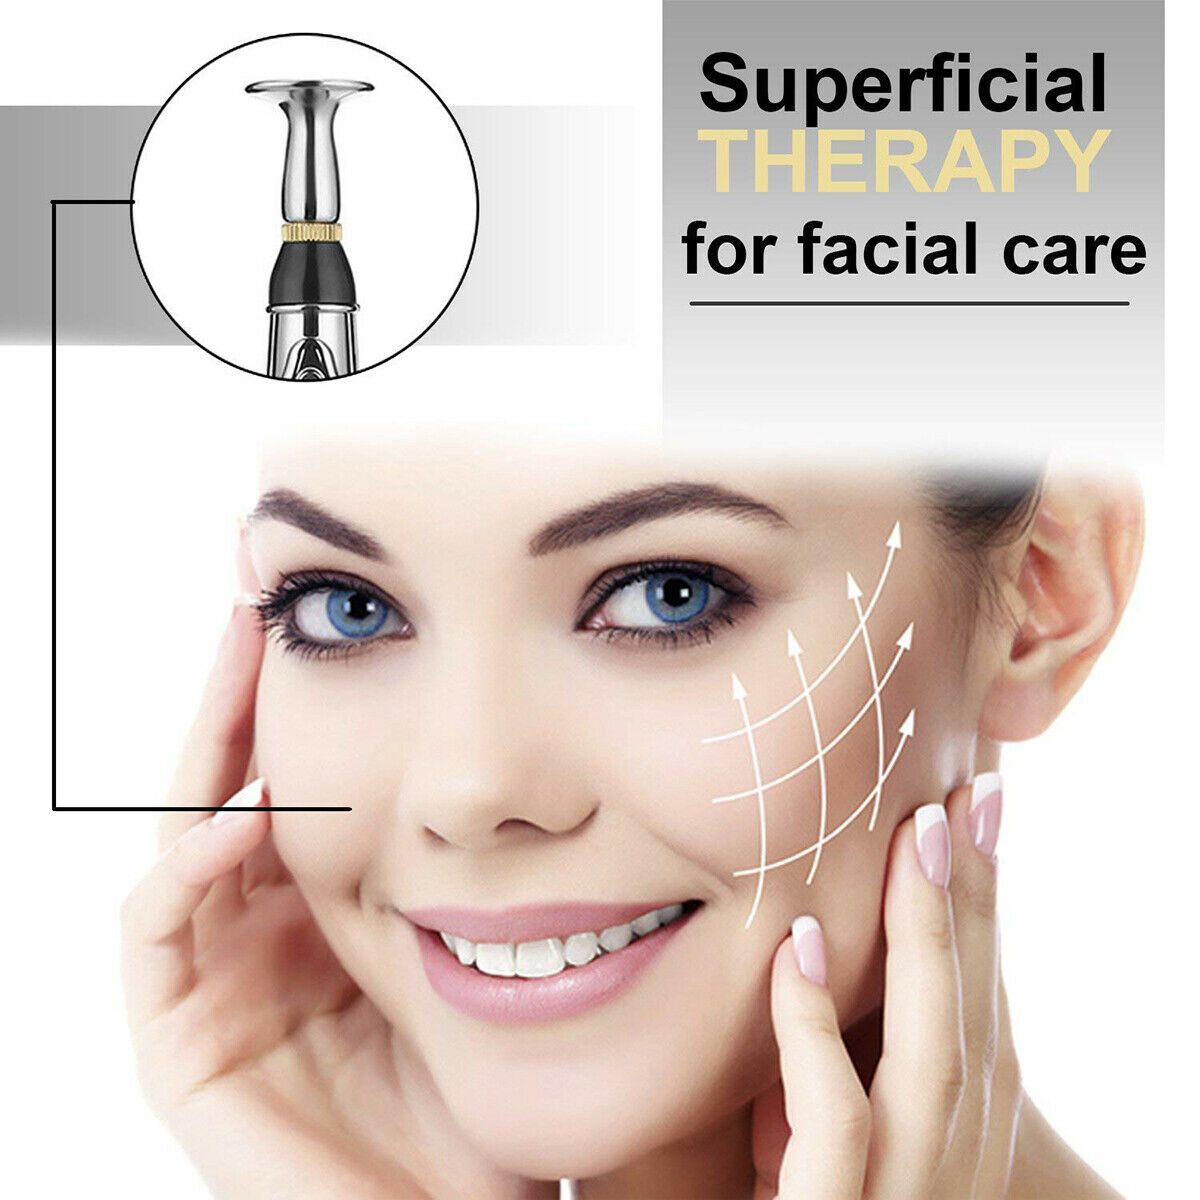 Superficial therapy for facial care by multi-functional pen